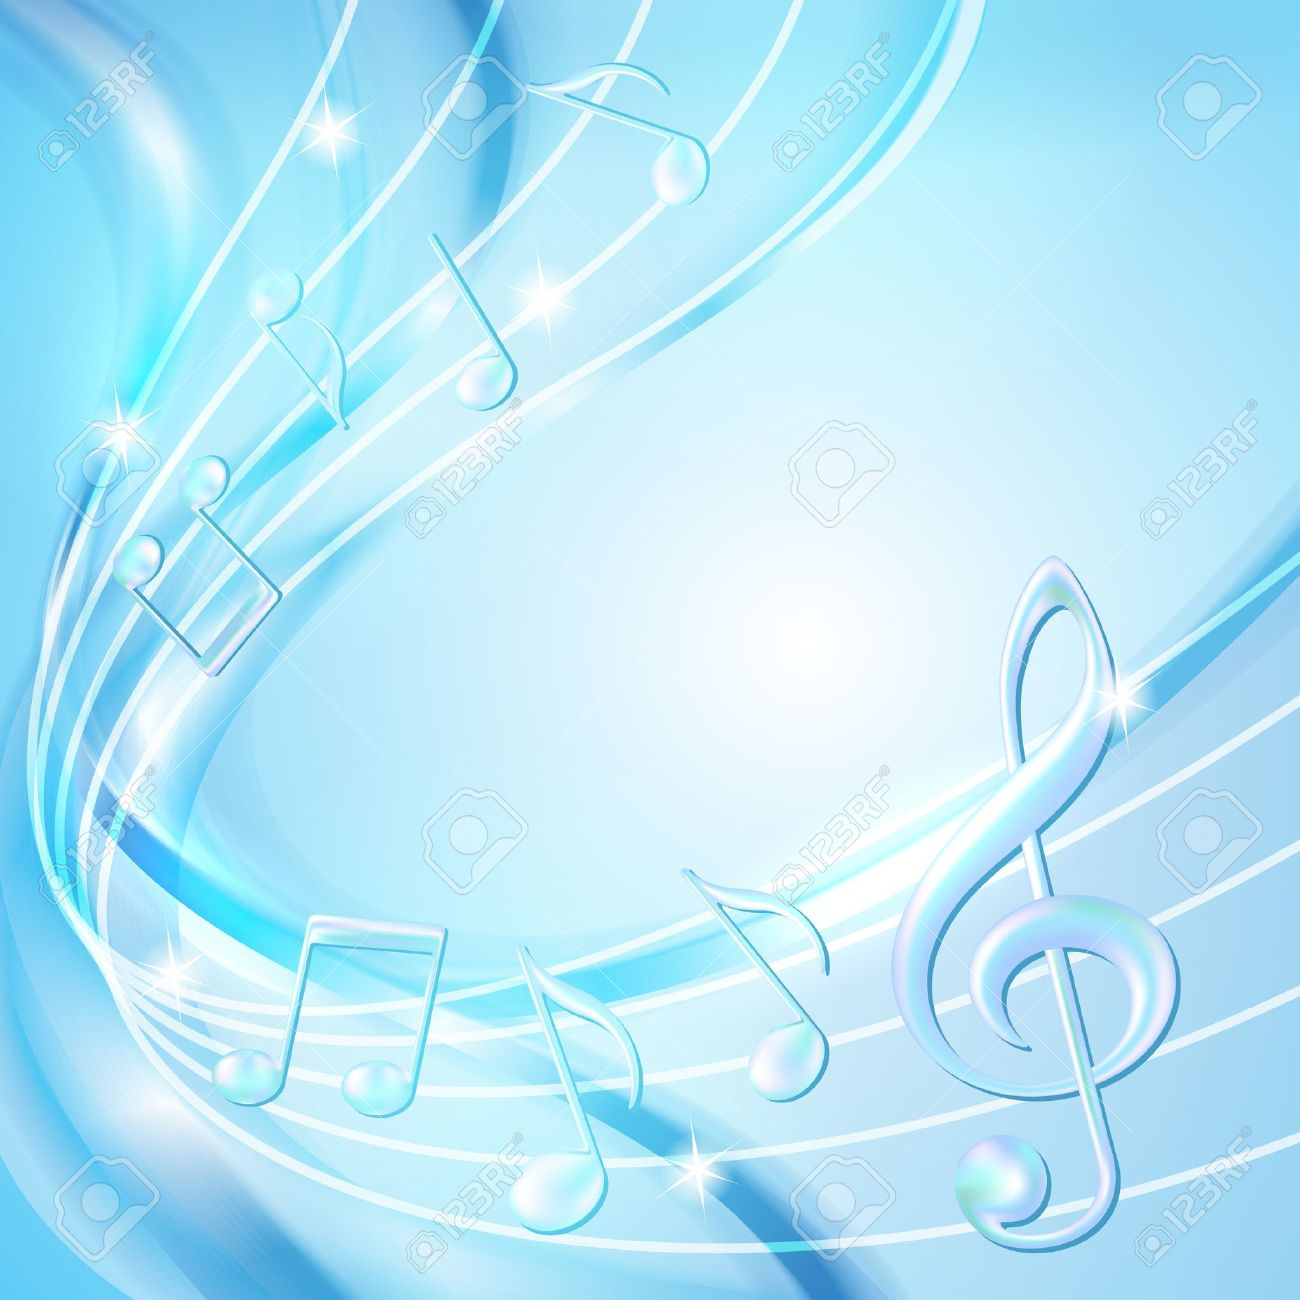 Blue abstract notes music background illustration Stock Vector - 20276227